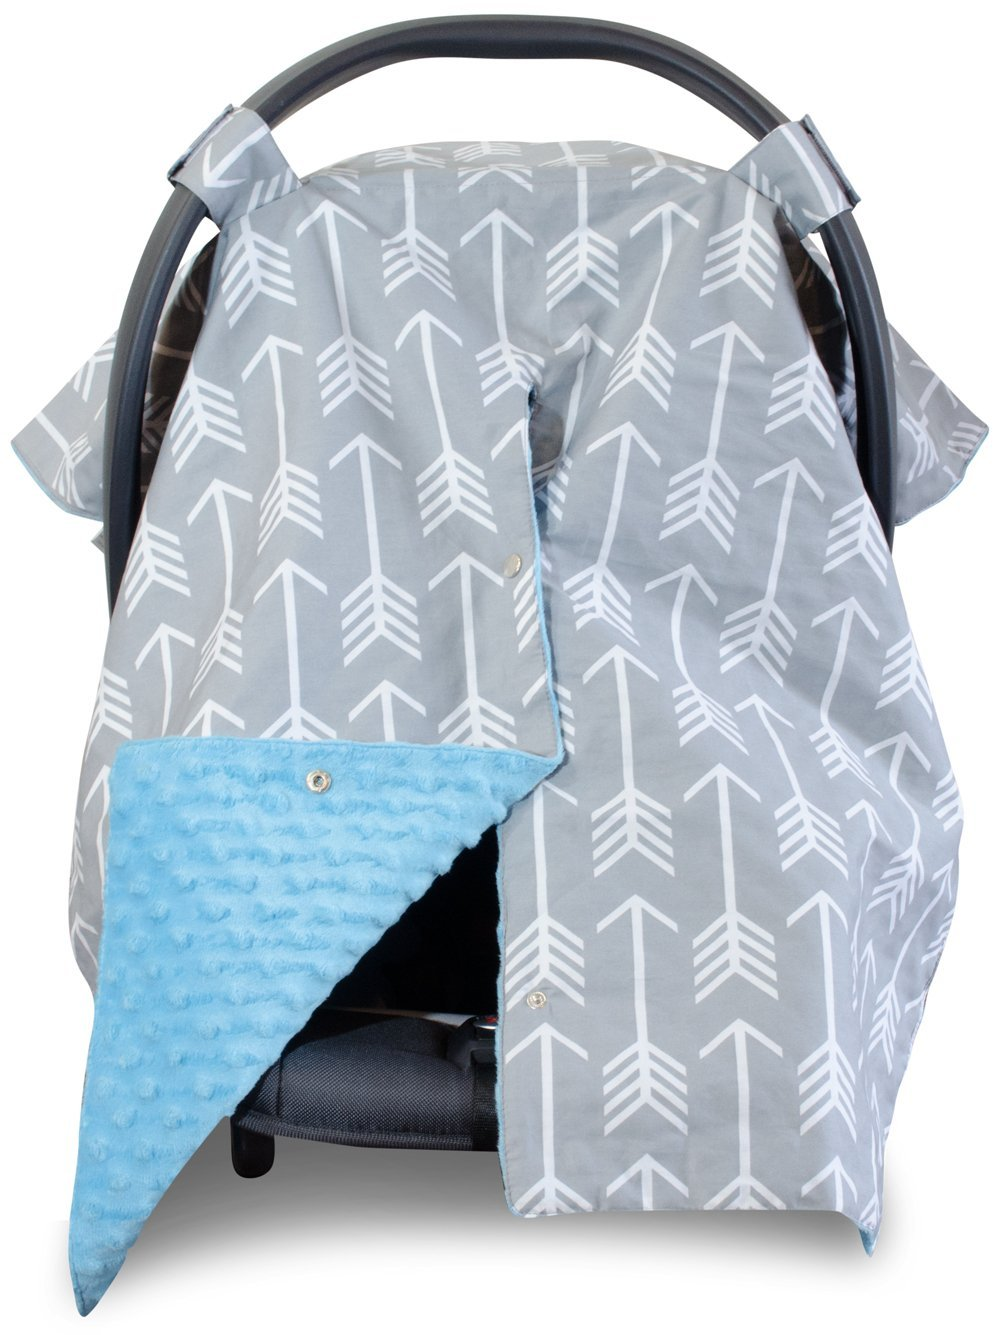 Infant Car Seat Cover Patterns Free Patterns